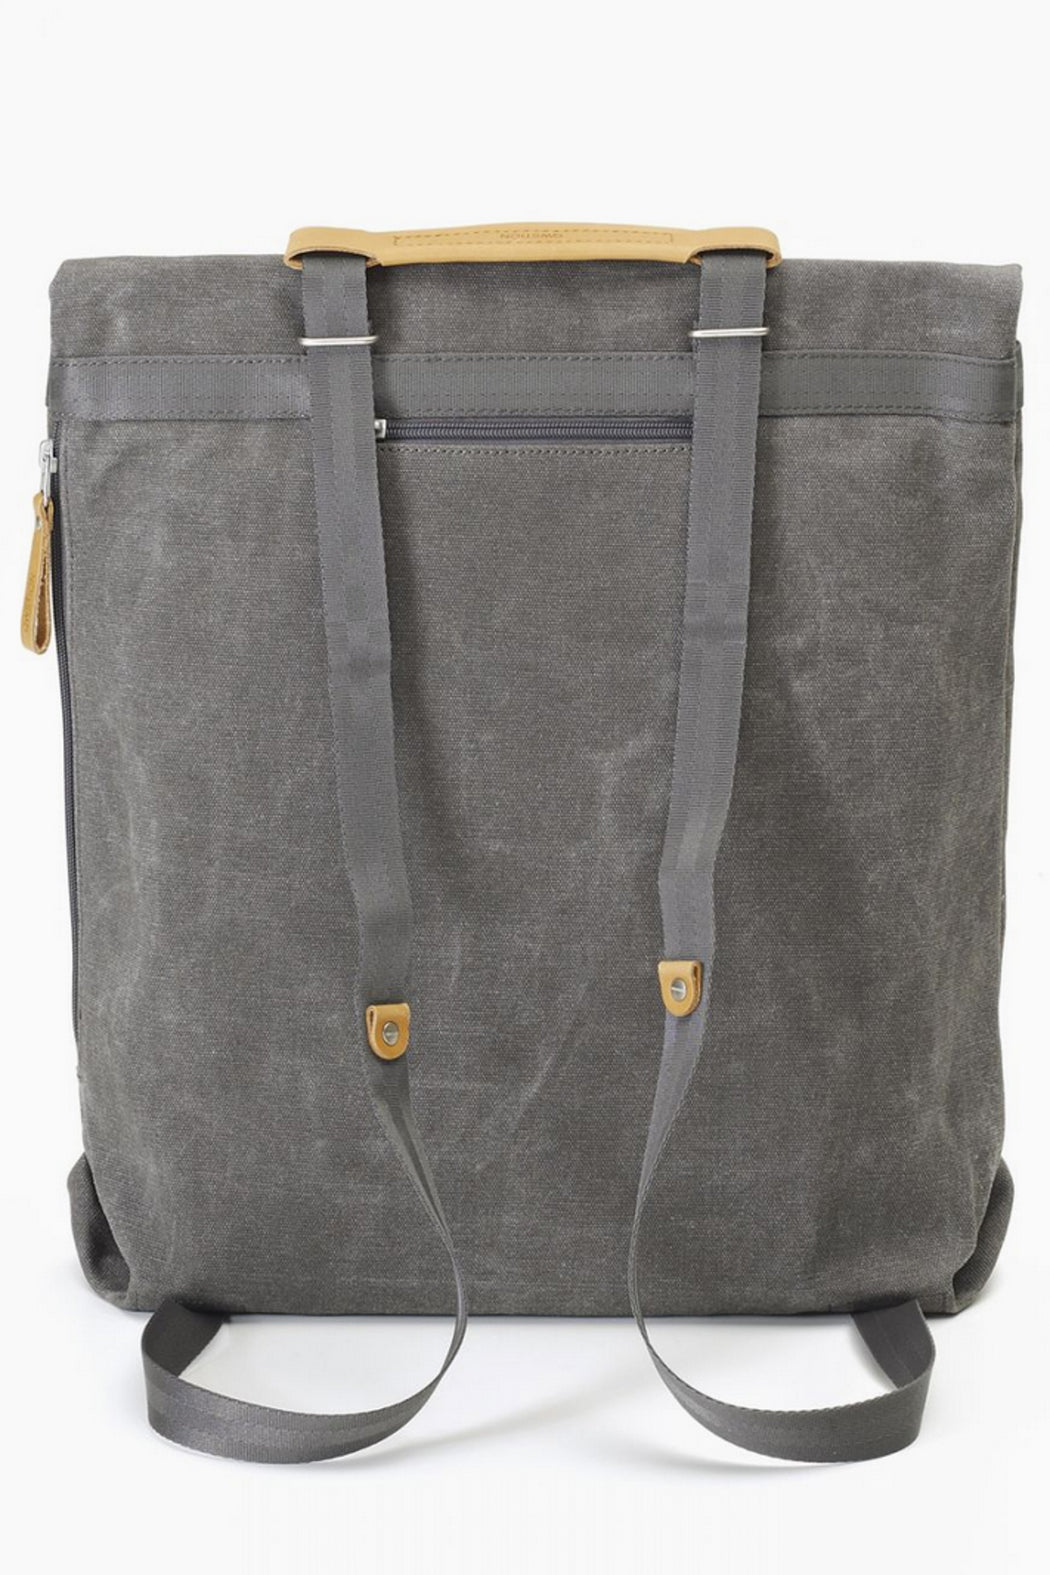 DAY TOTE organic washed grey